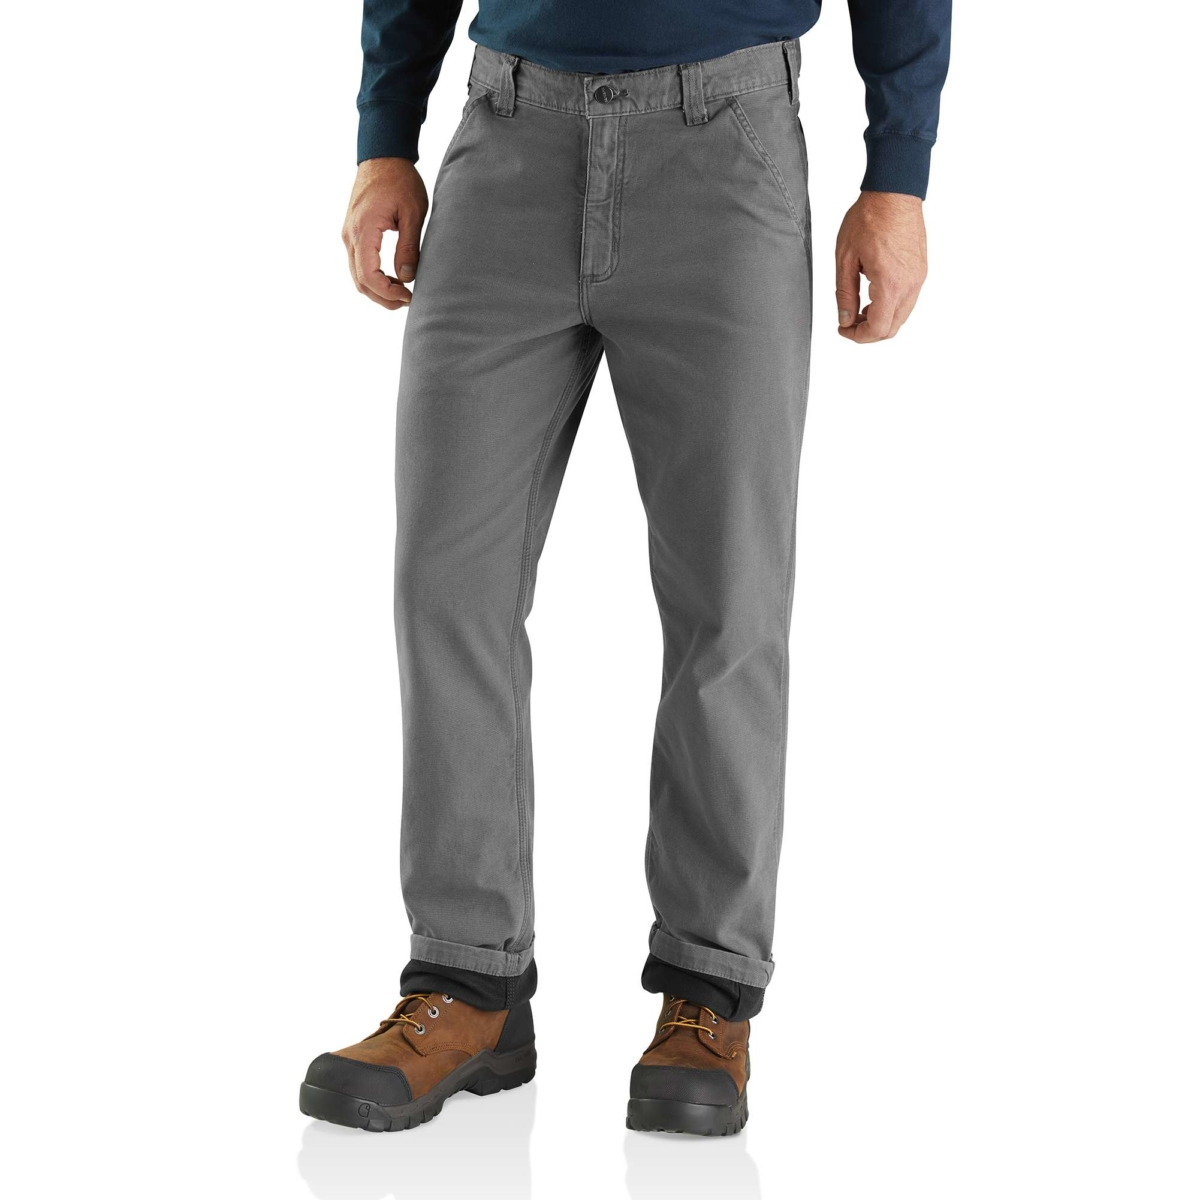 Carhartt Rugged Flex Rigby Dungaree Knit Lined Pant Gravel USA - GOOFASH - Mens TROUSERS